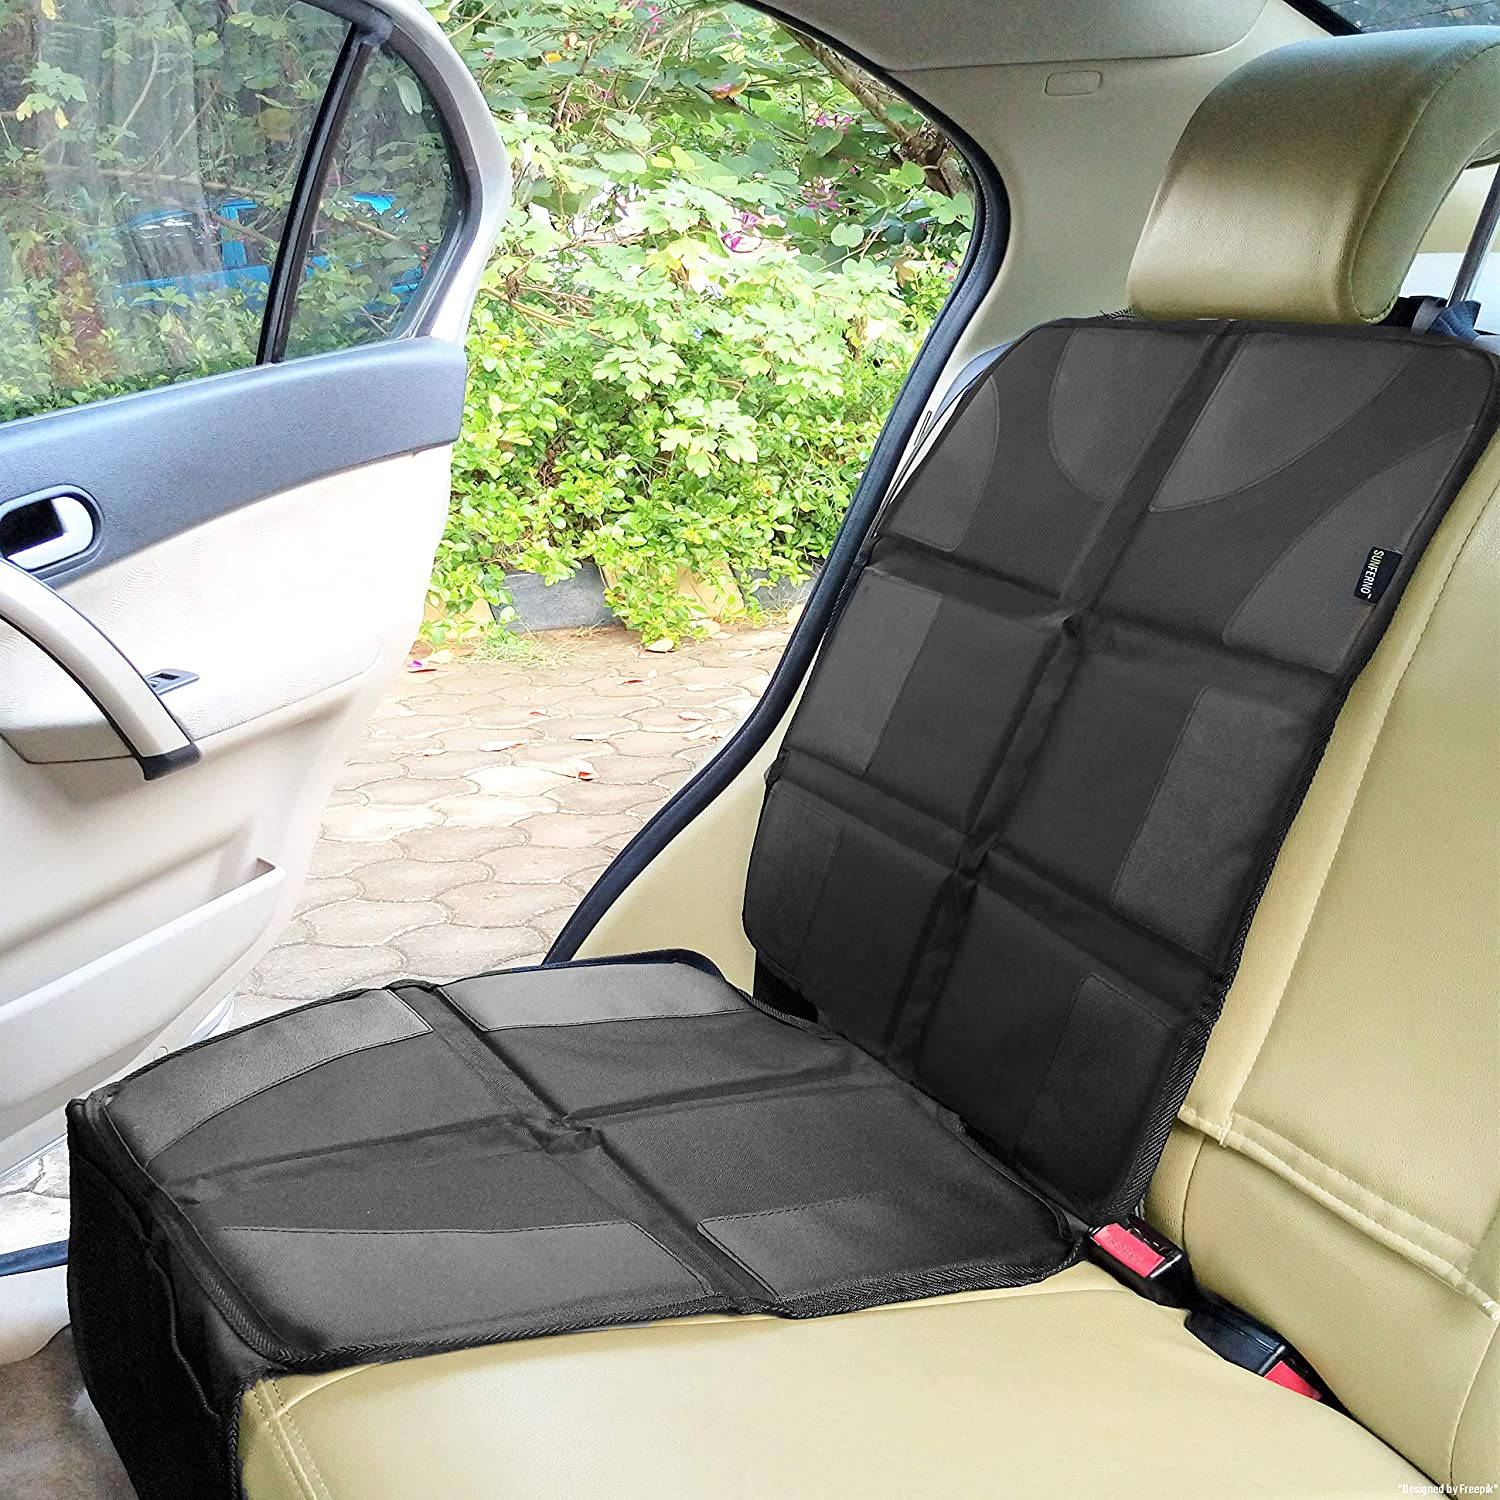 Children Seat Covers Protector Car Mat Cushion Protector Auto Chairs Protector Accessory Black Cars Seat Protector